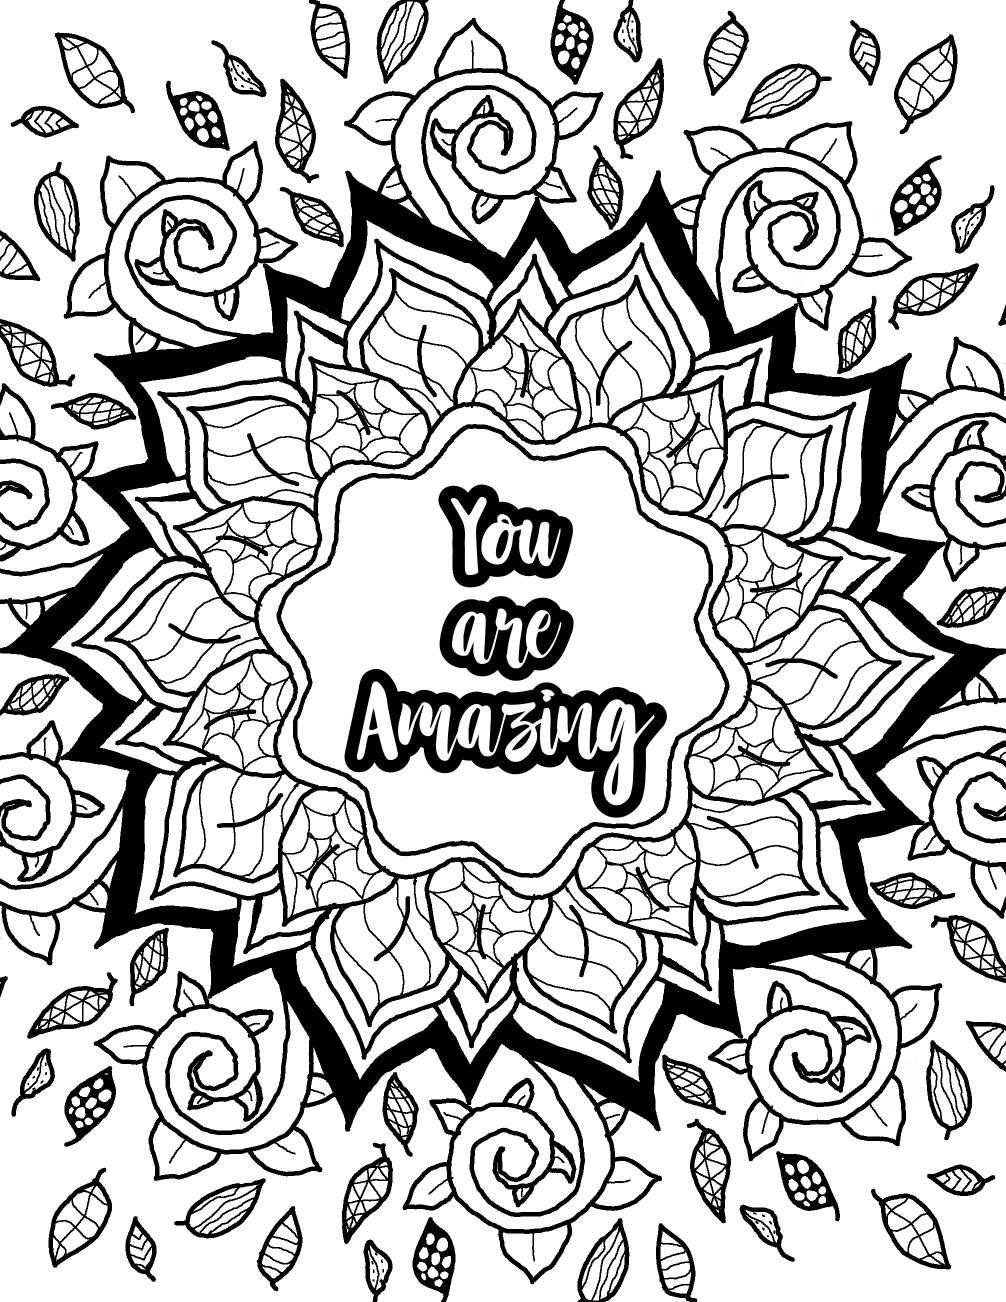 Inspirational Coloring Pages Pdf : inspirational, coloring, pages, Adult, Coloring, Books, Printables